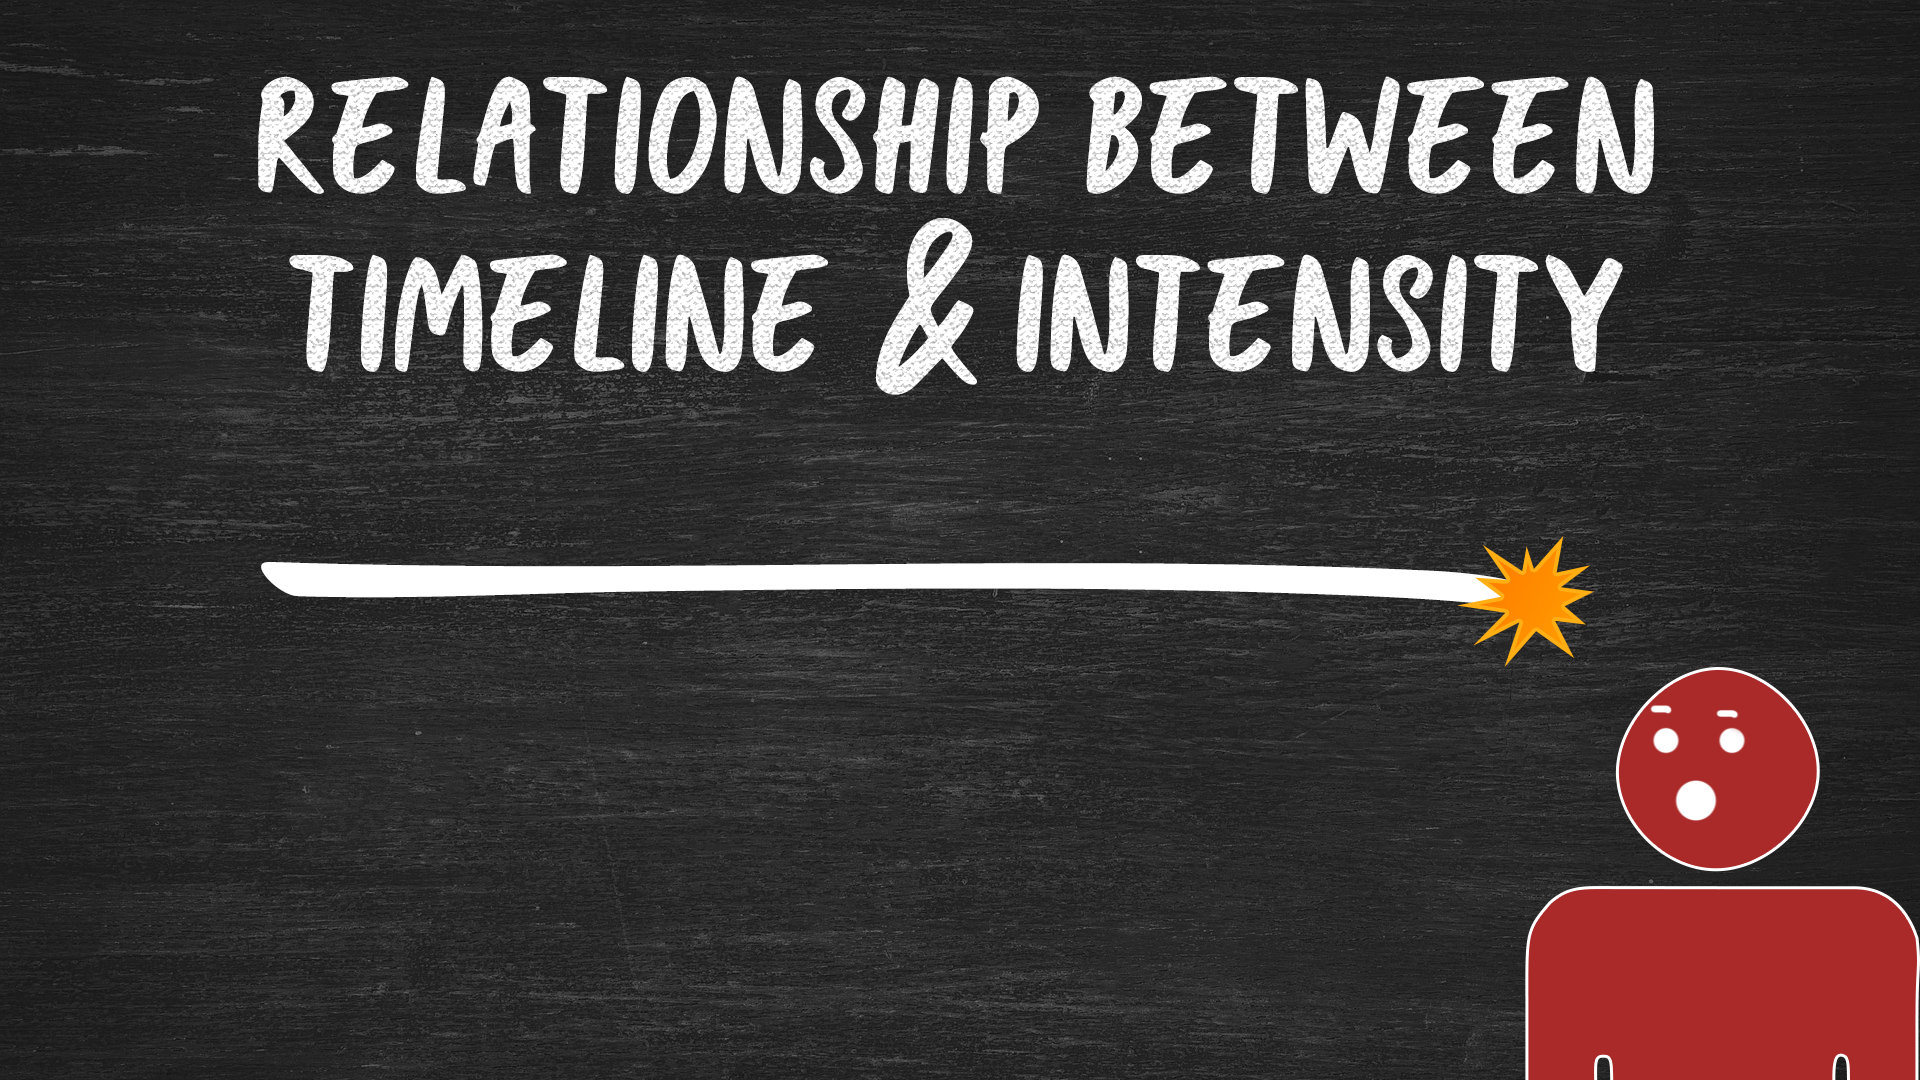 The relationship between timeline and intensity - saving money